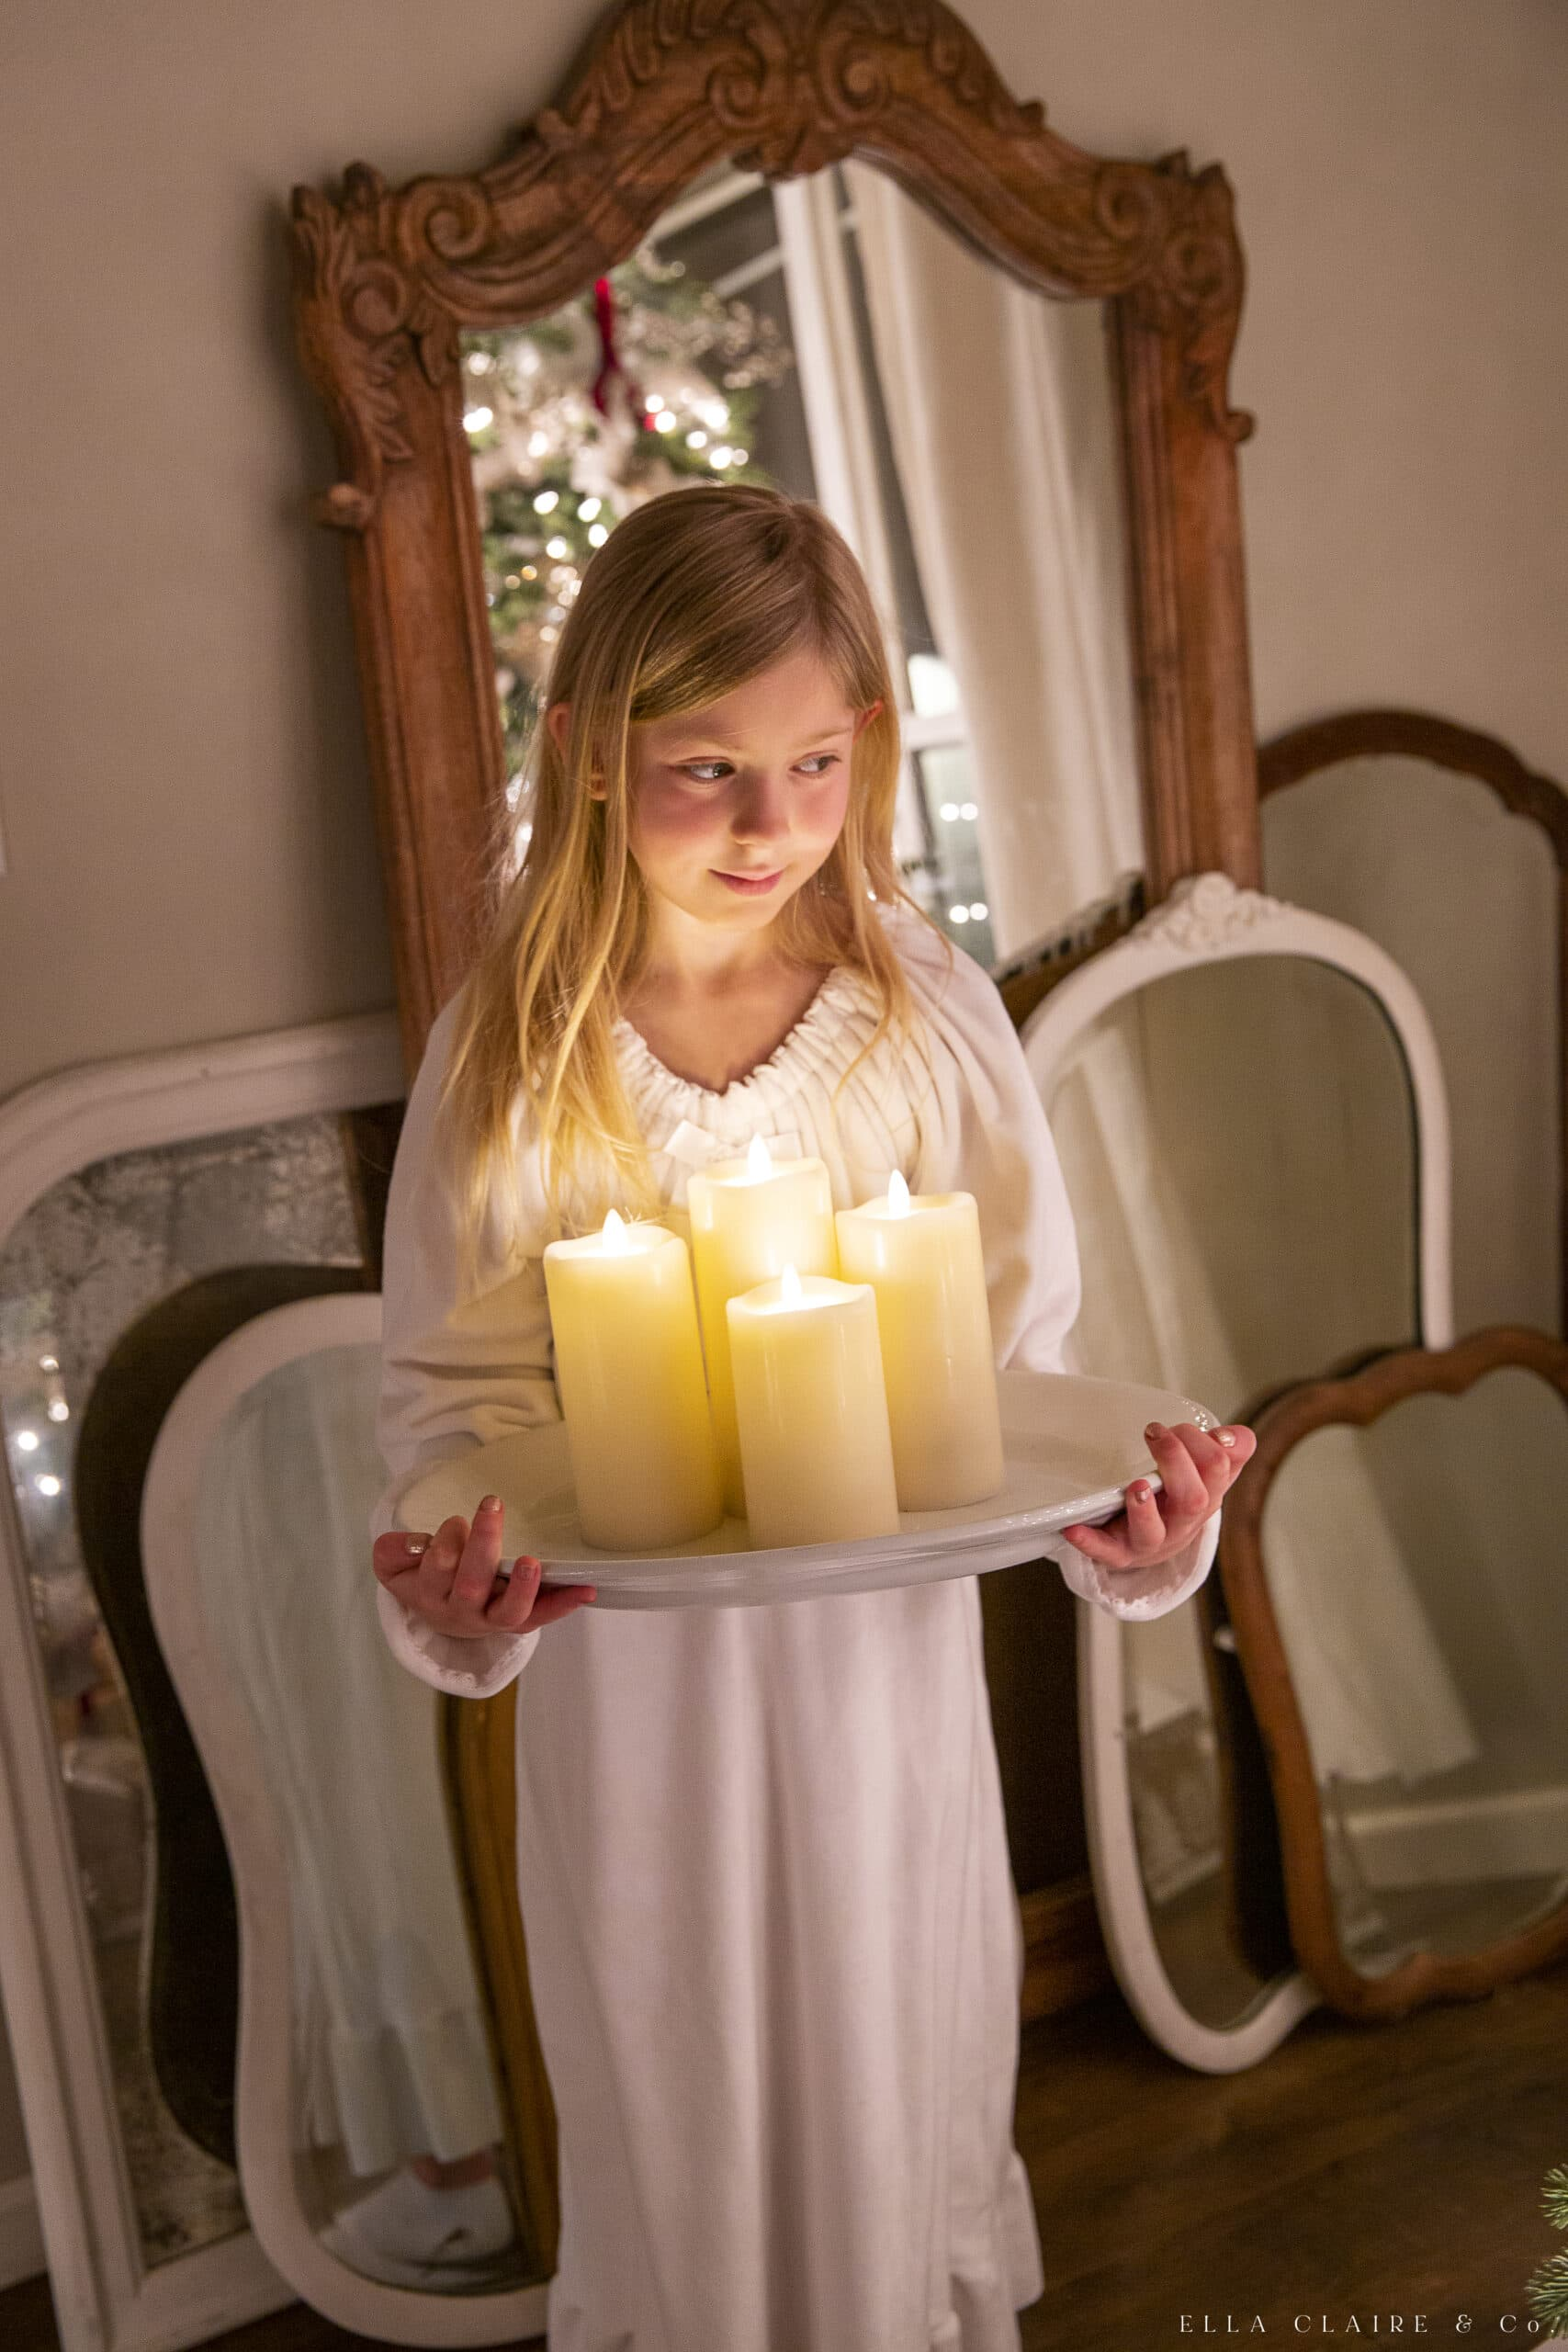 little girl holding Christmas candles in nightgown